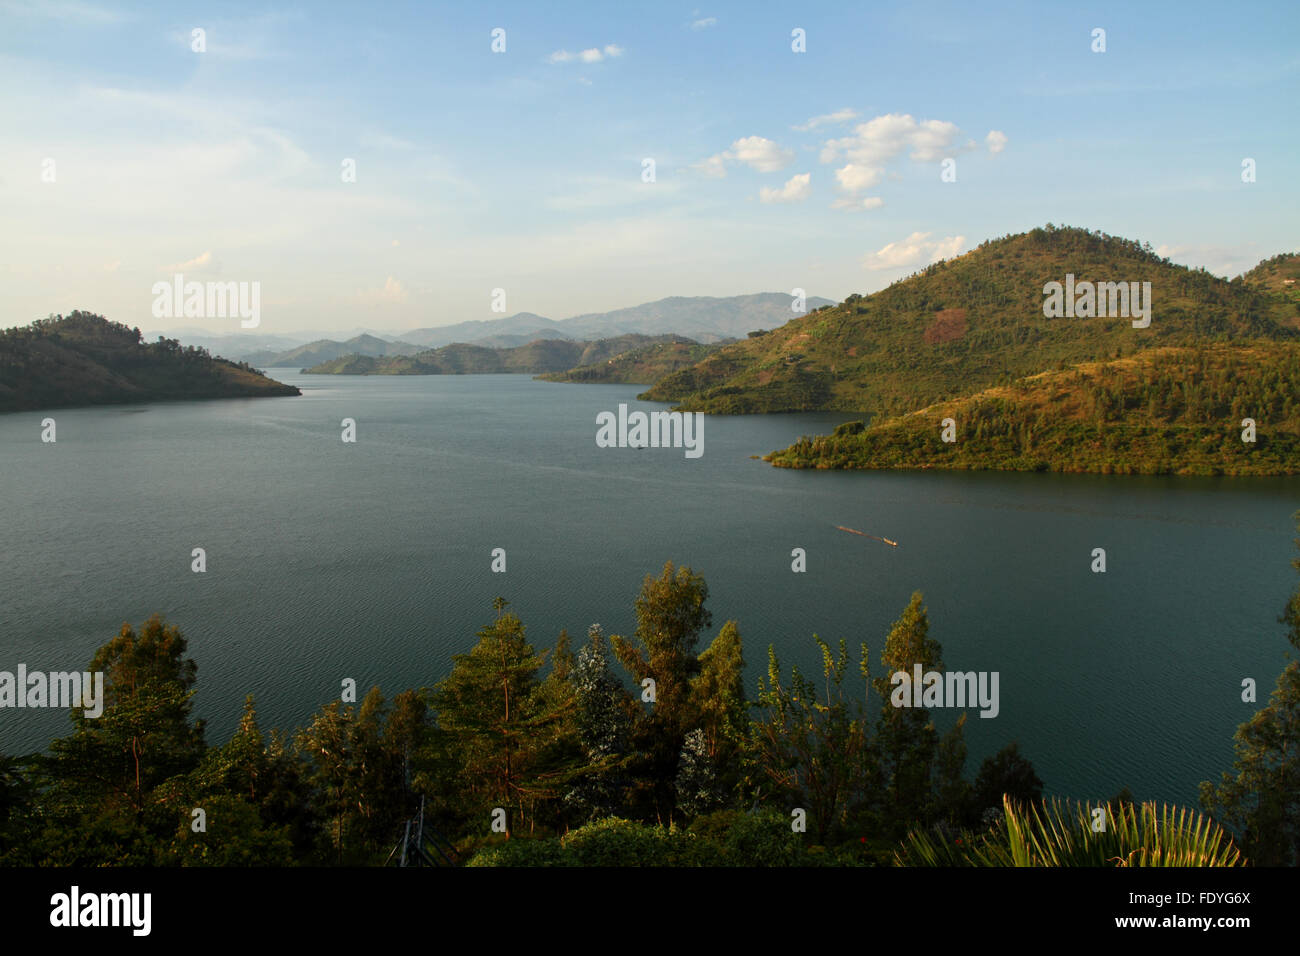 Lake Kivu set amongst rolling hills fading into the horizon in Rwanda, Africa - Stock Image